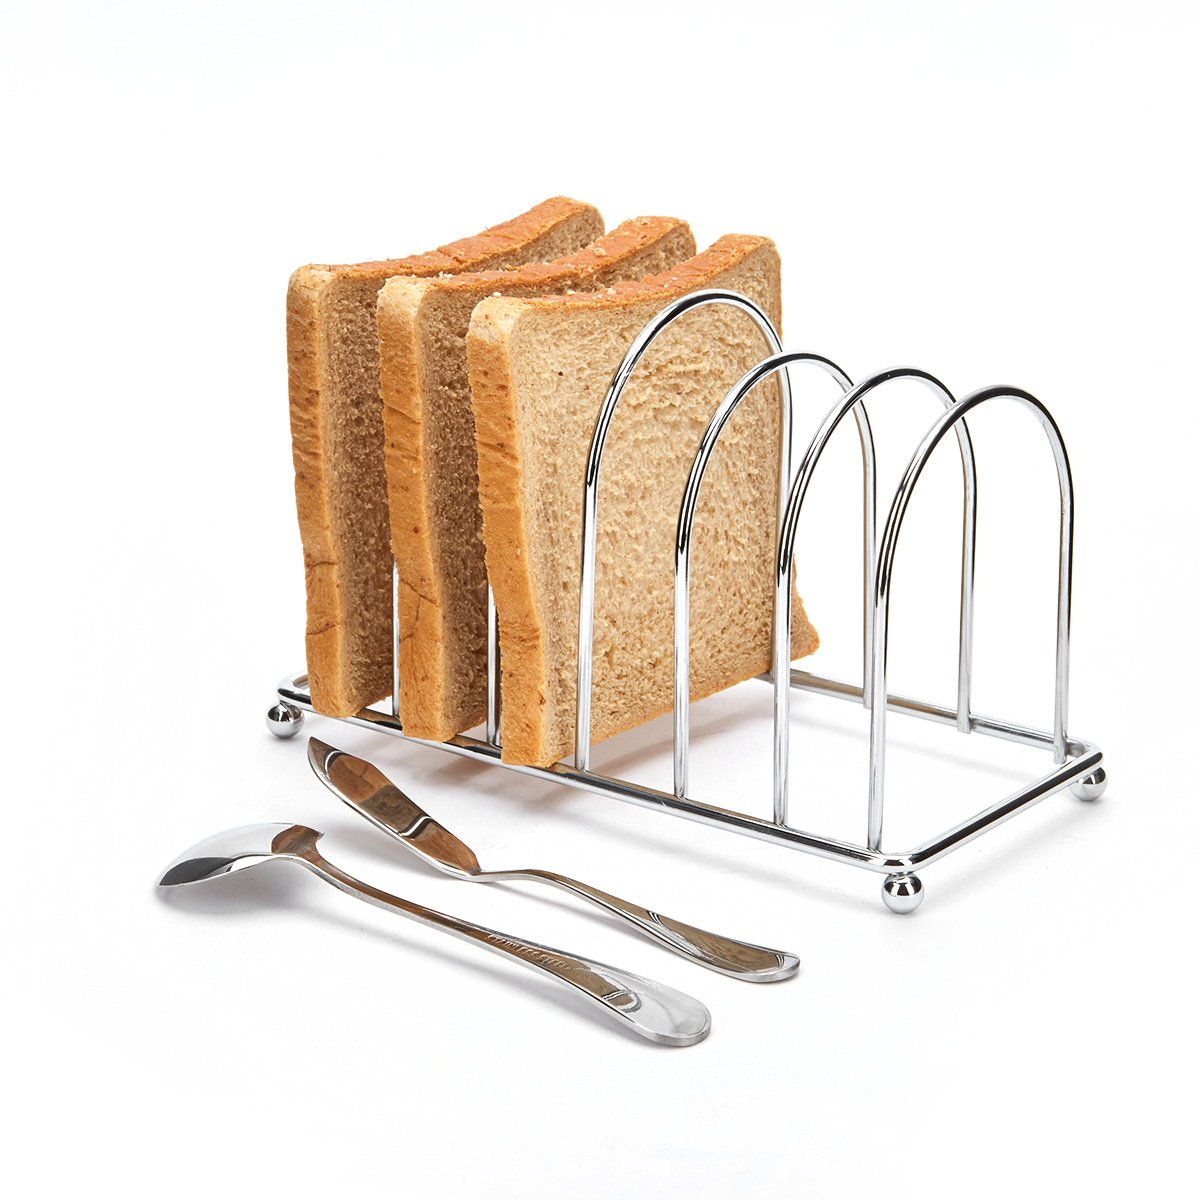 PINK inscriptions Chrome 6 SLICE Toast Rack New Year discount. by PIKN inscriptions (Image #3)